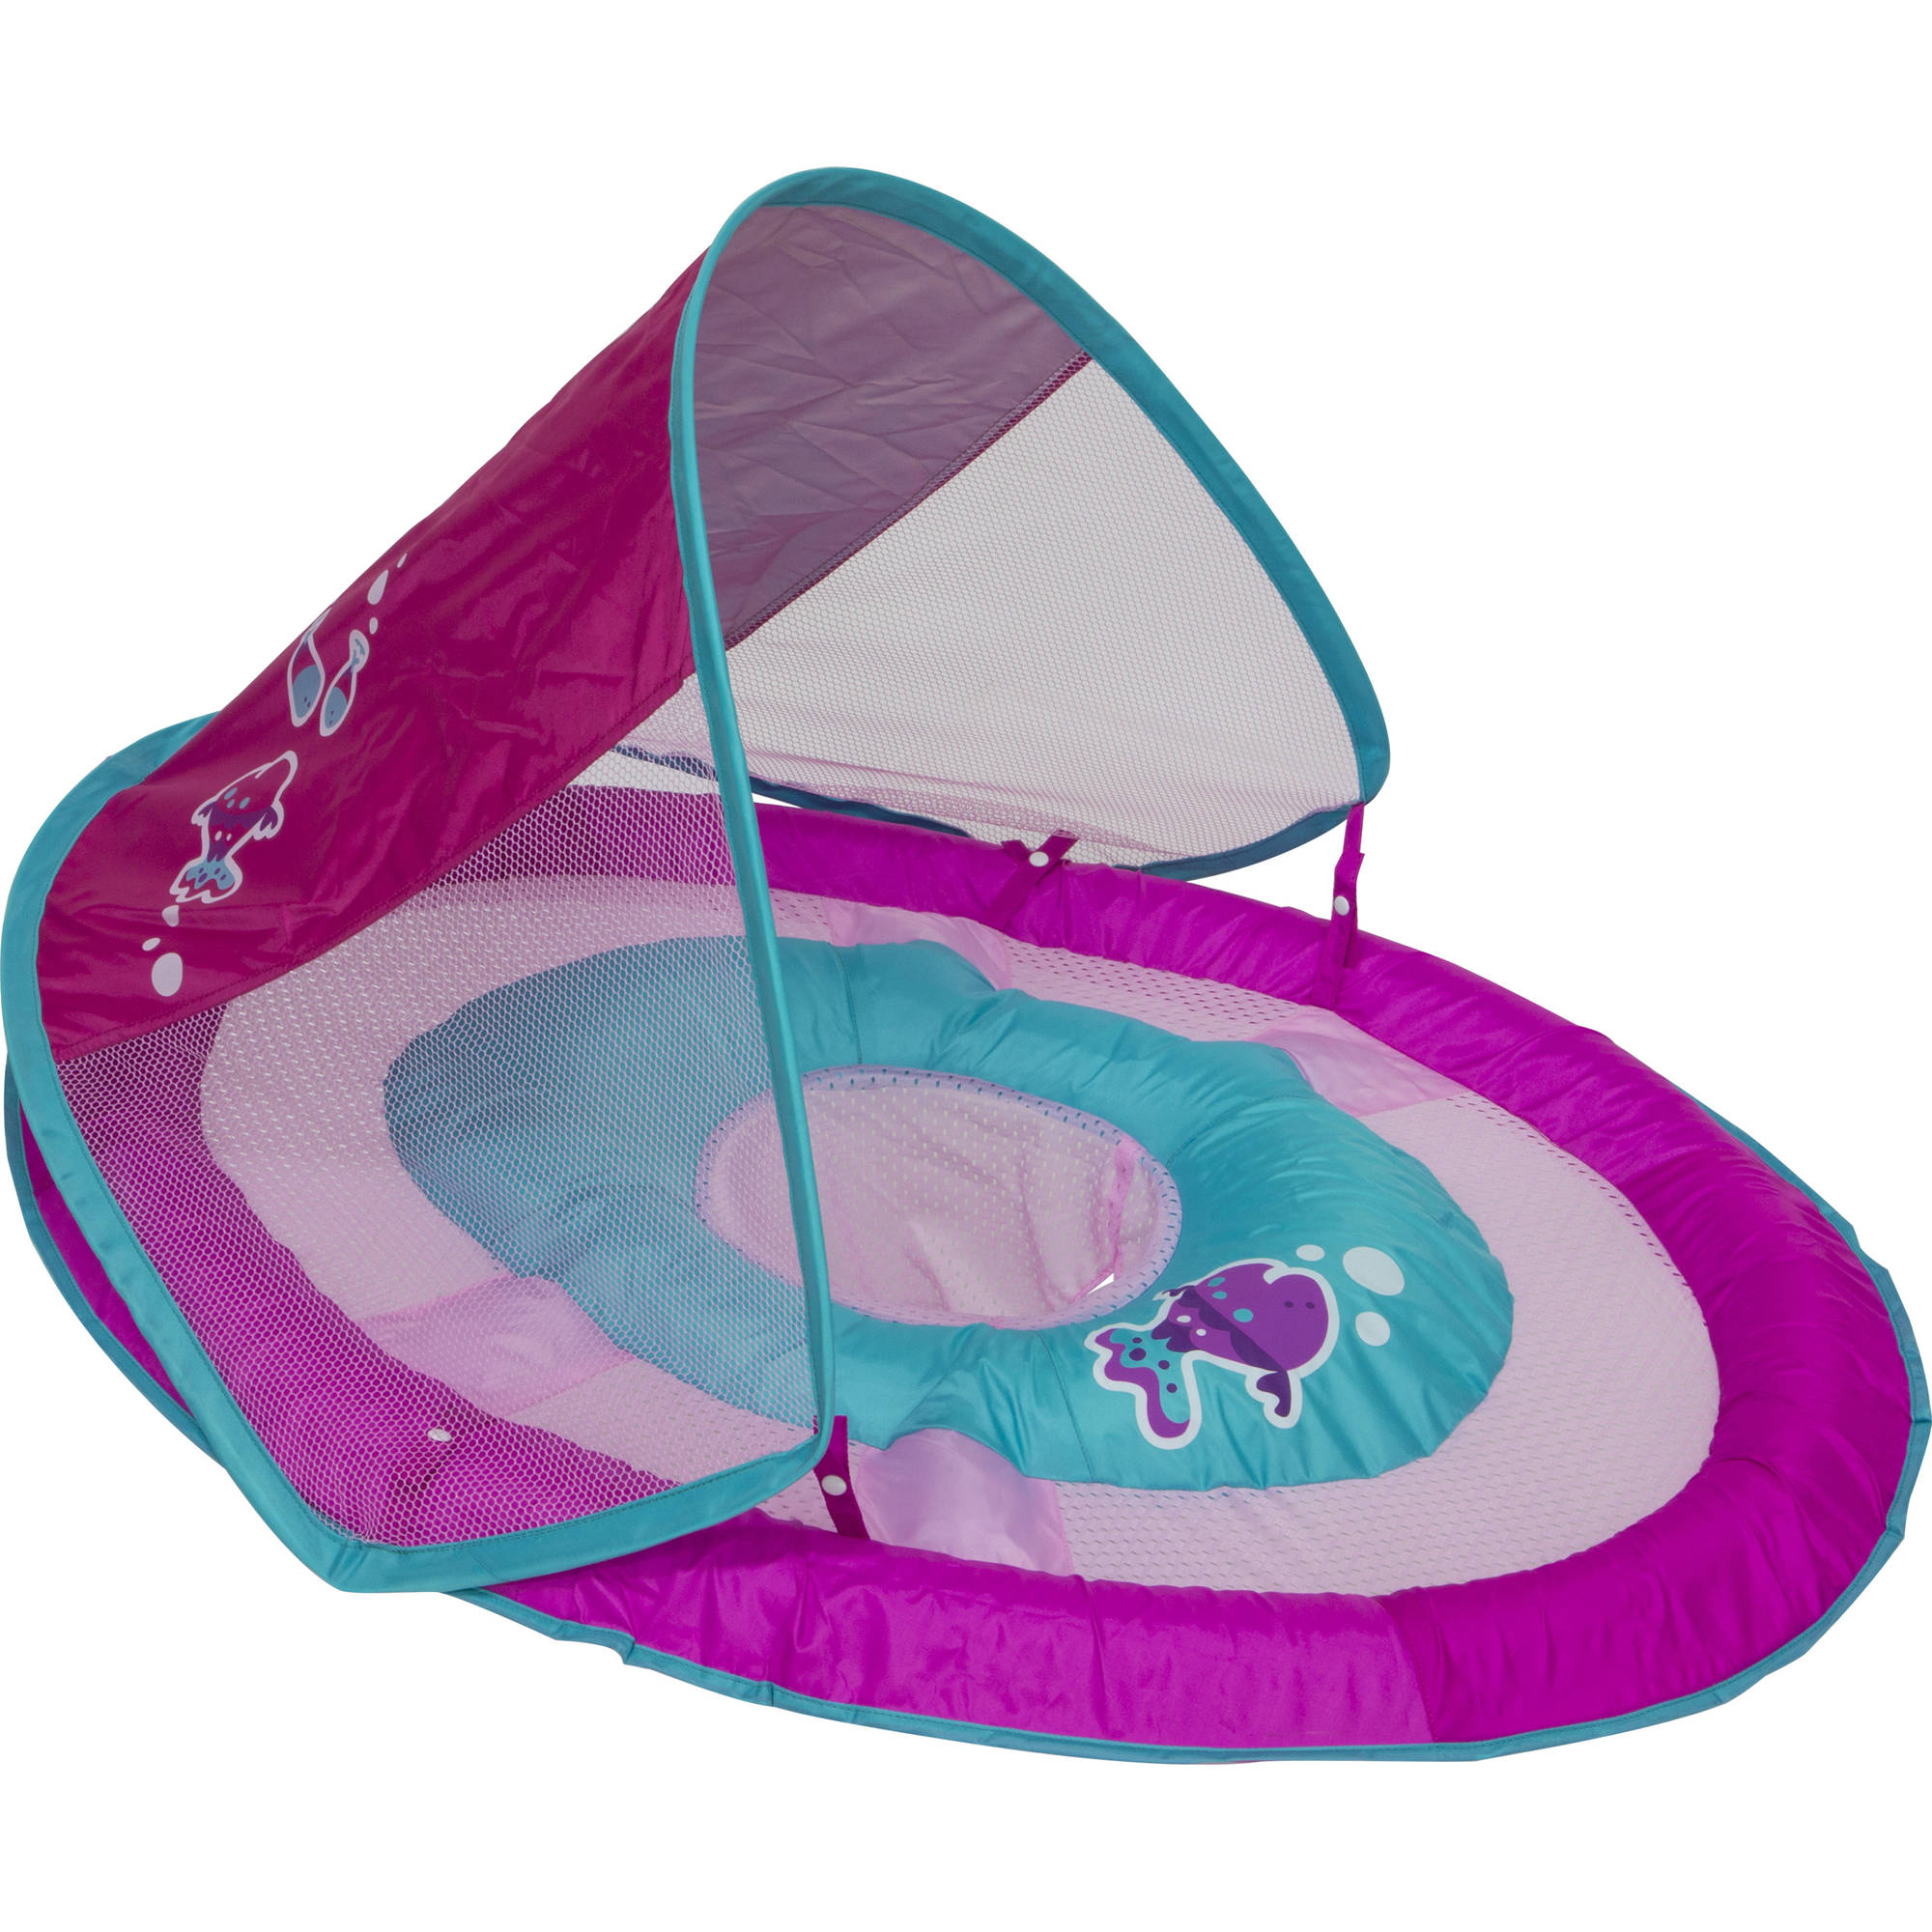 SwimWays Baby Spring Float Sun Canopy, Pink